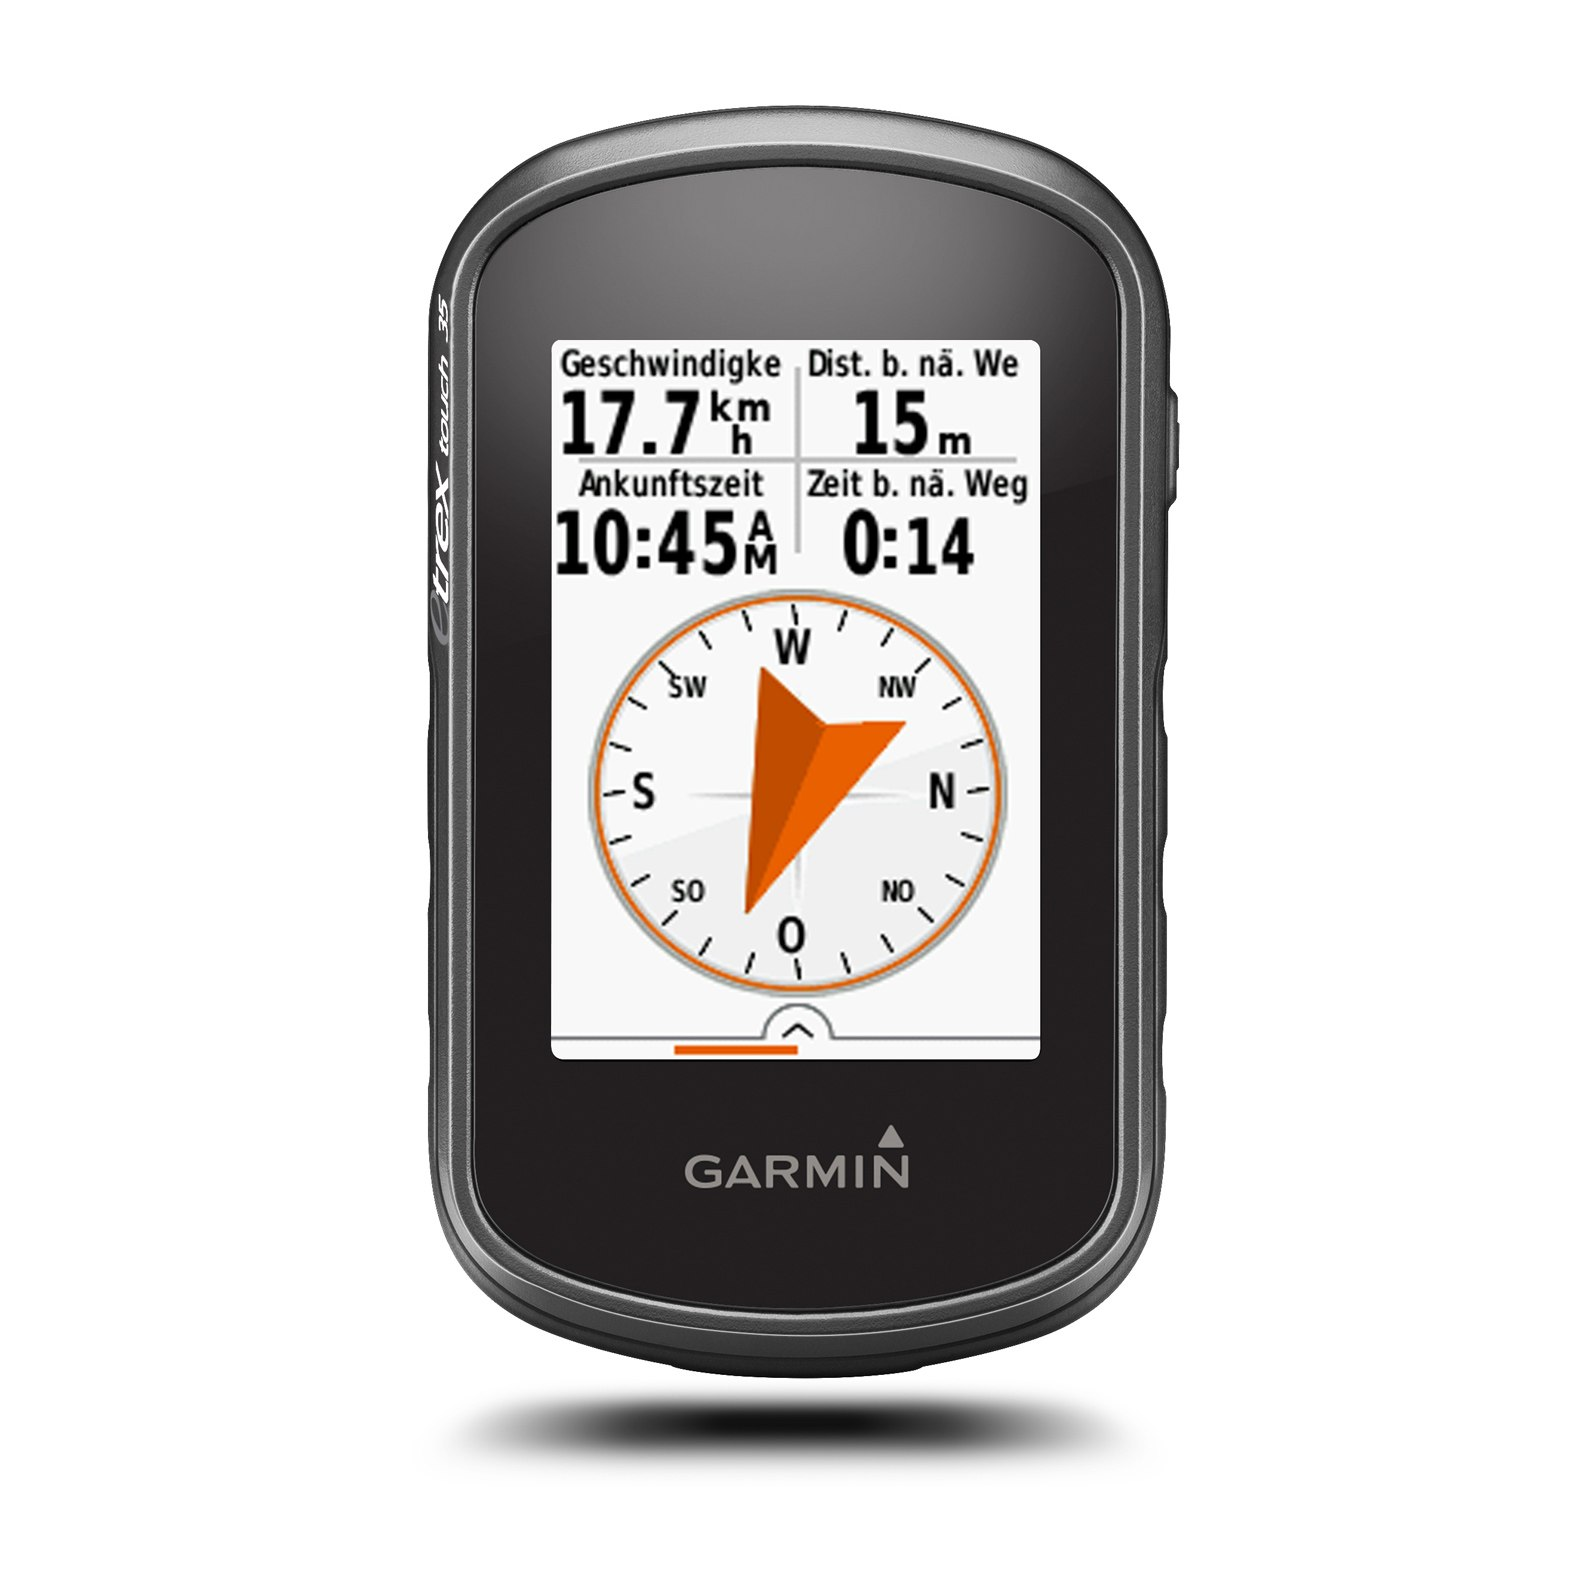 Image of Garmin GPS eTrex Touch 35 Handheld Navigation Device + Topo Active Europe Map - 010-01325-11